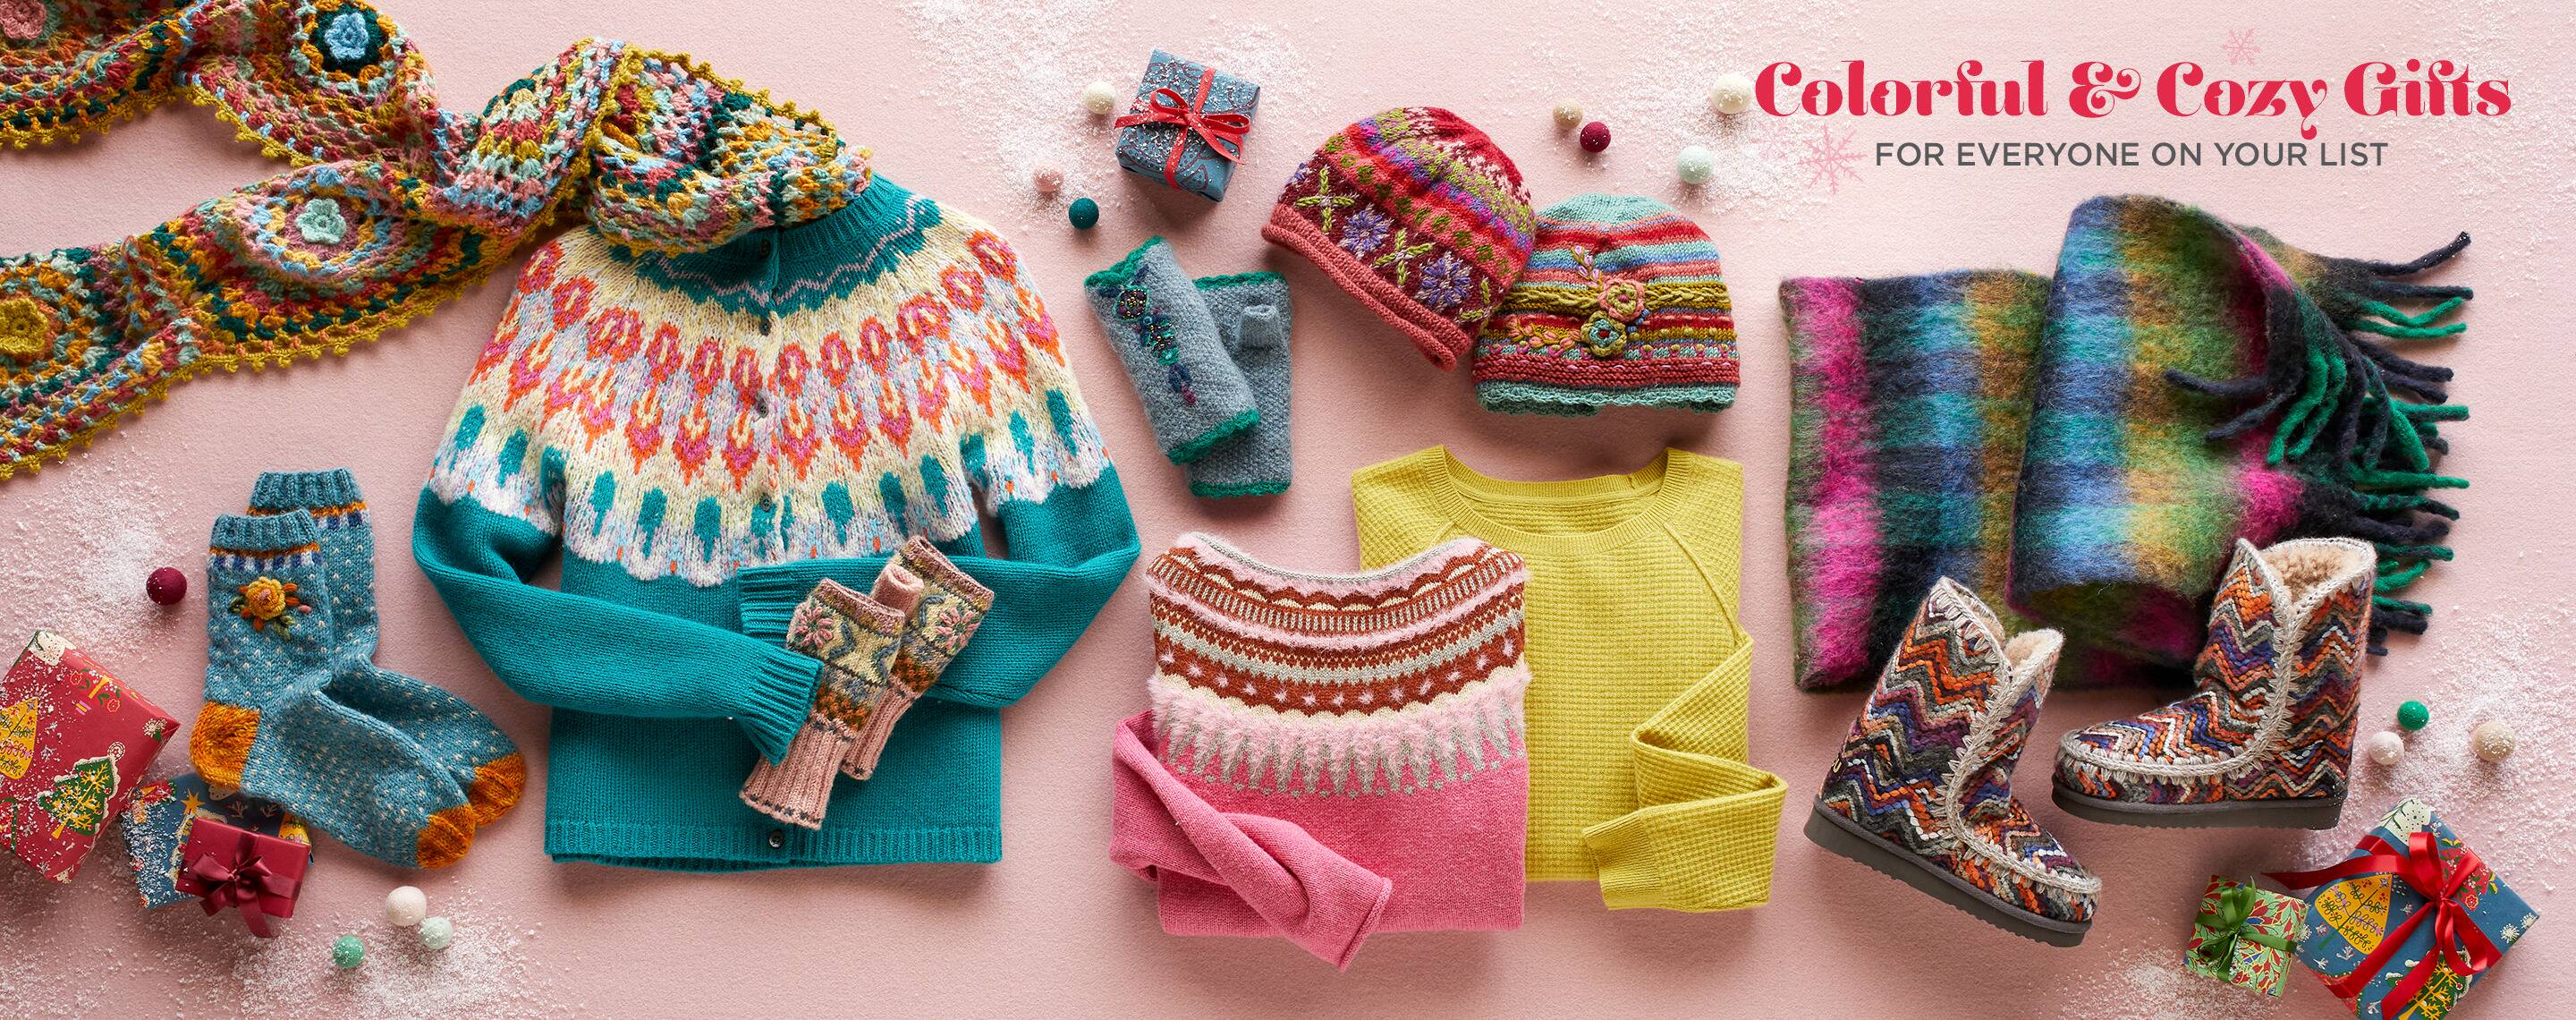 Cozy, Colorful Gifts